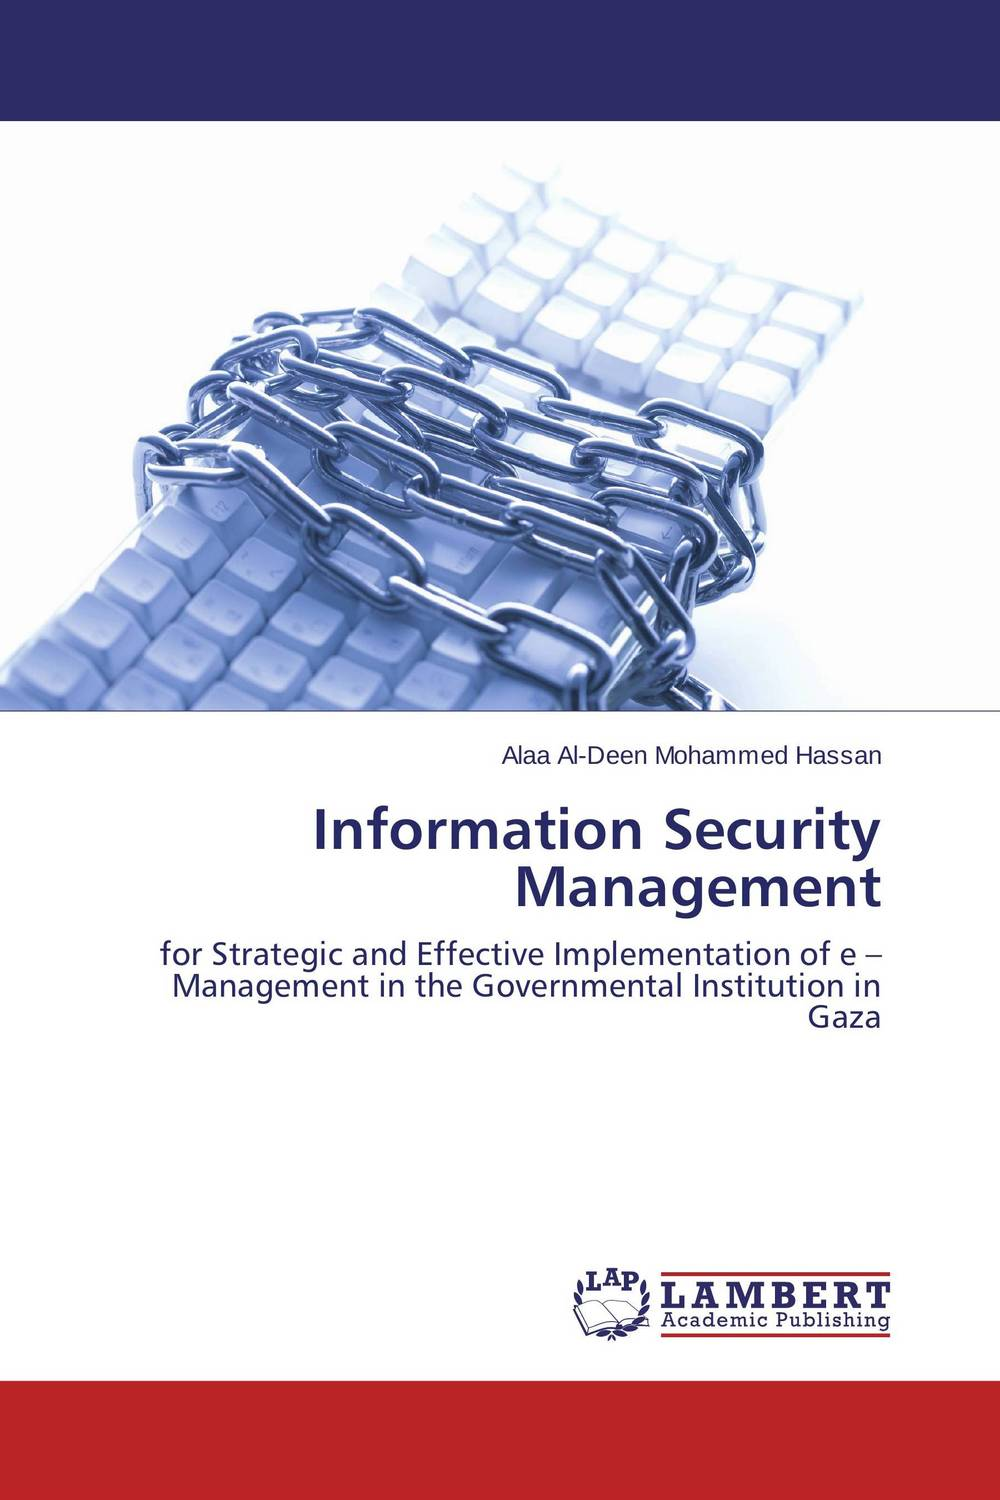 Information Security Management franke bibliotheca cardiologica ballistocardiogra phy research and computer diagnosis